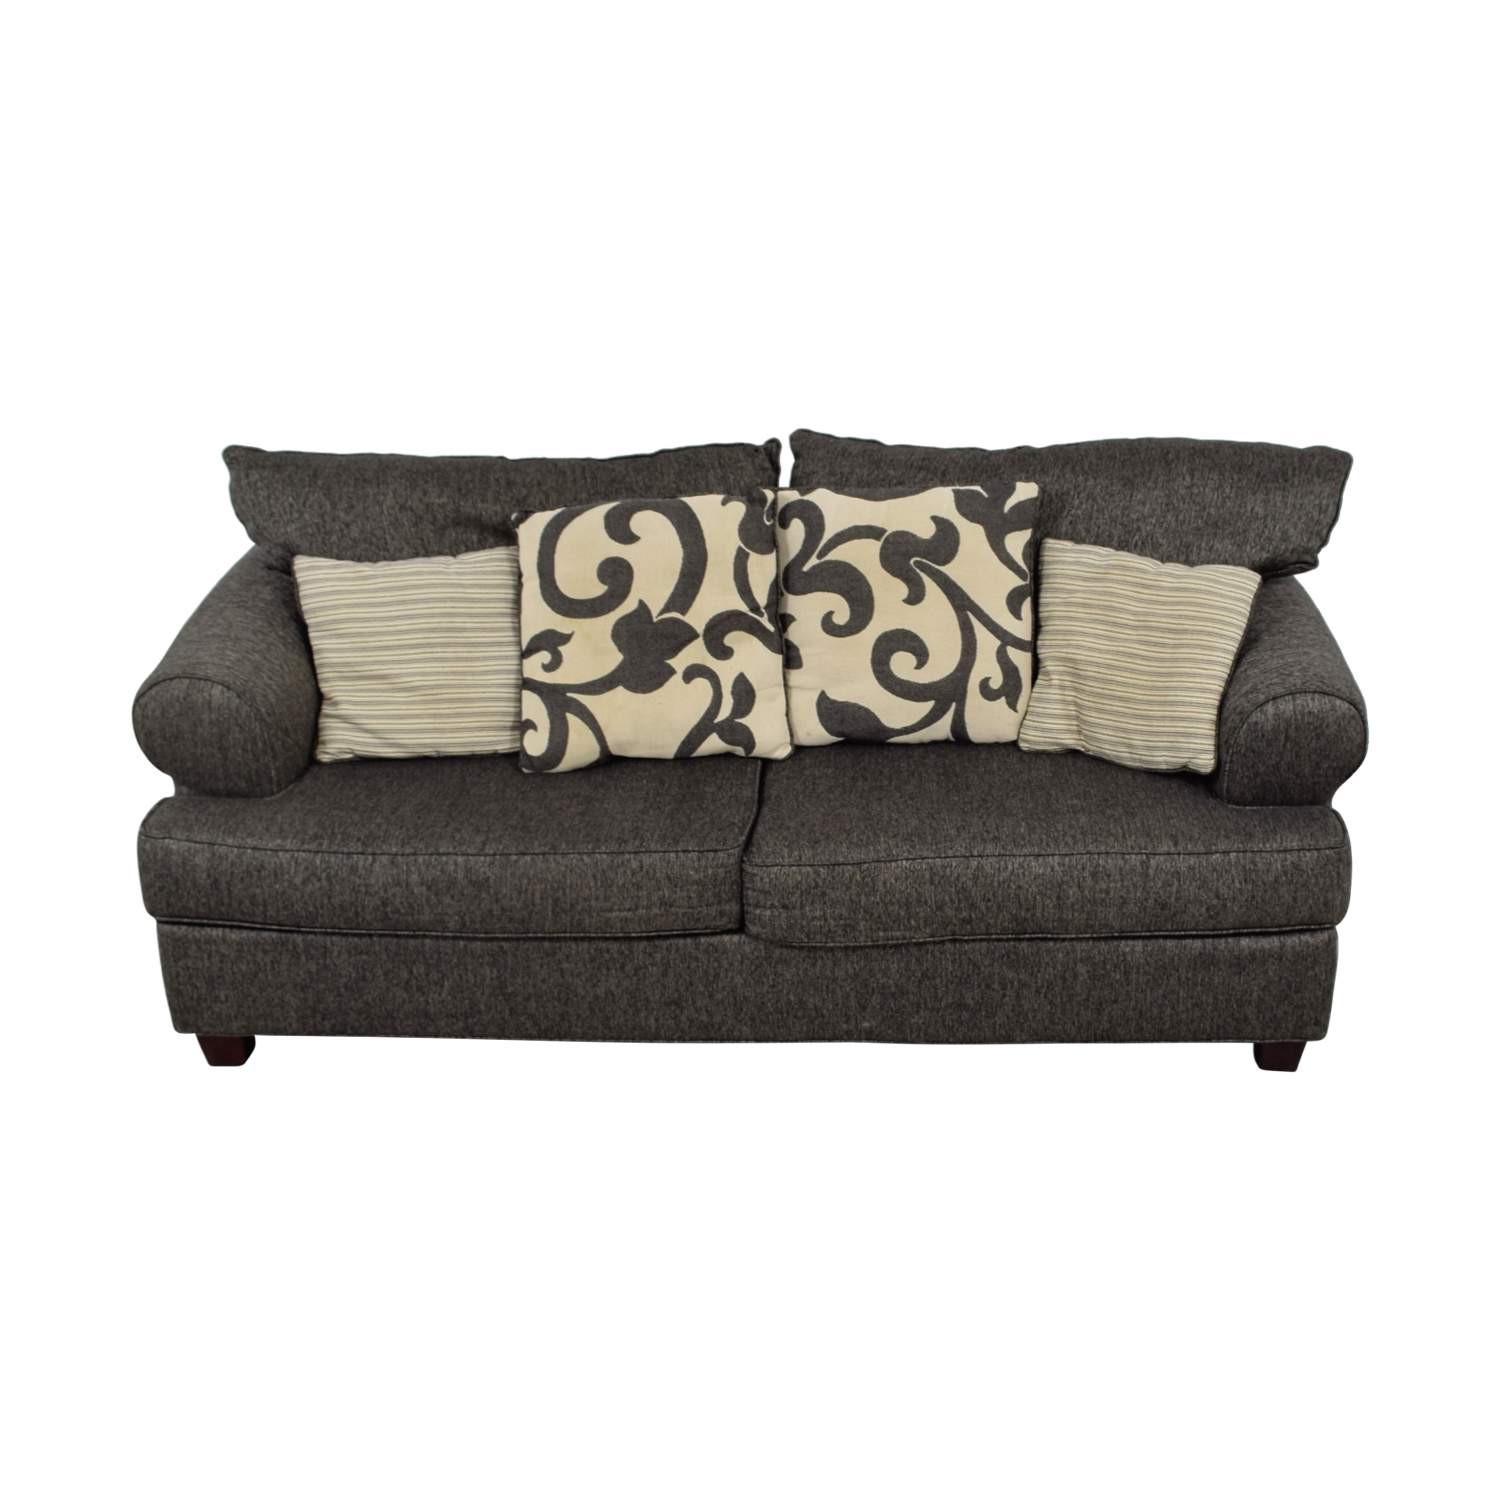 Bob's Furniture Bob's Furniture Big Grey Two-Seater Sofa for sale